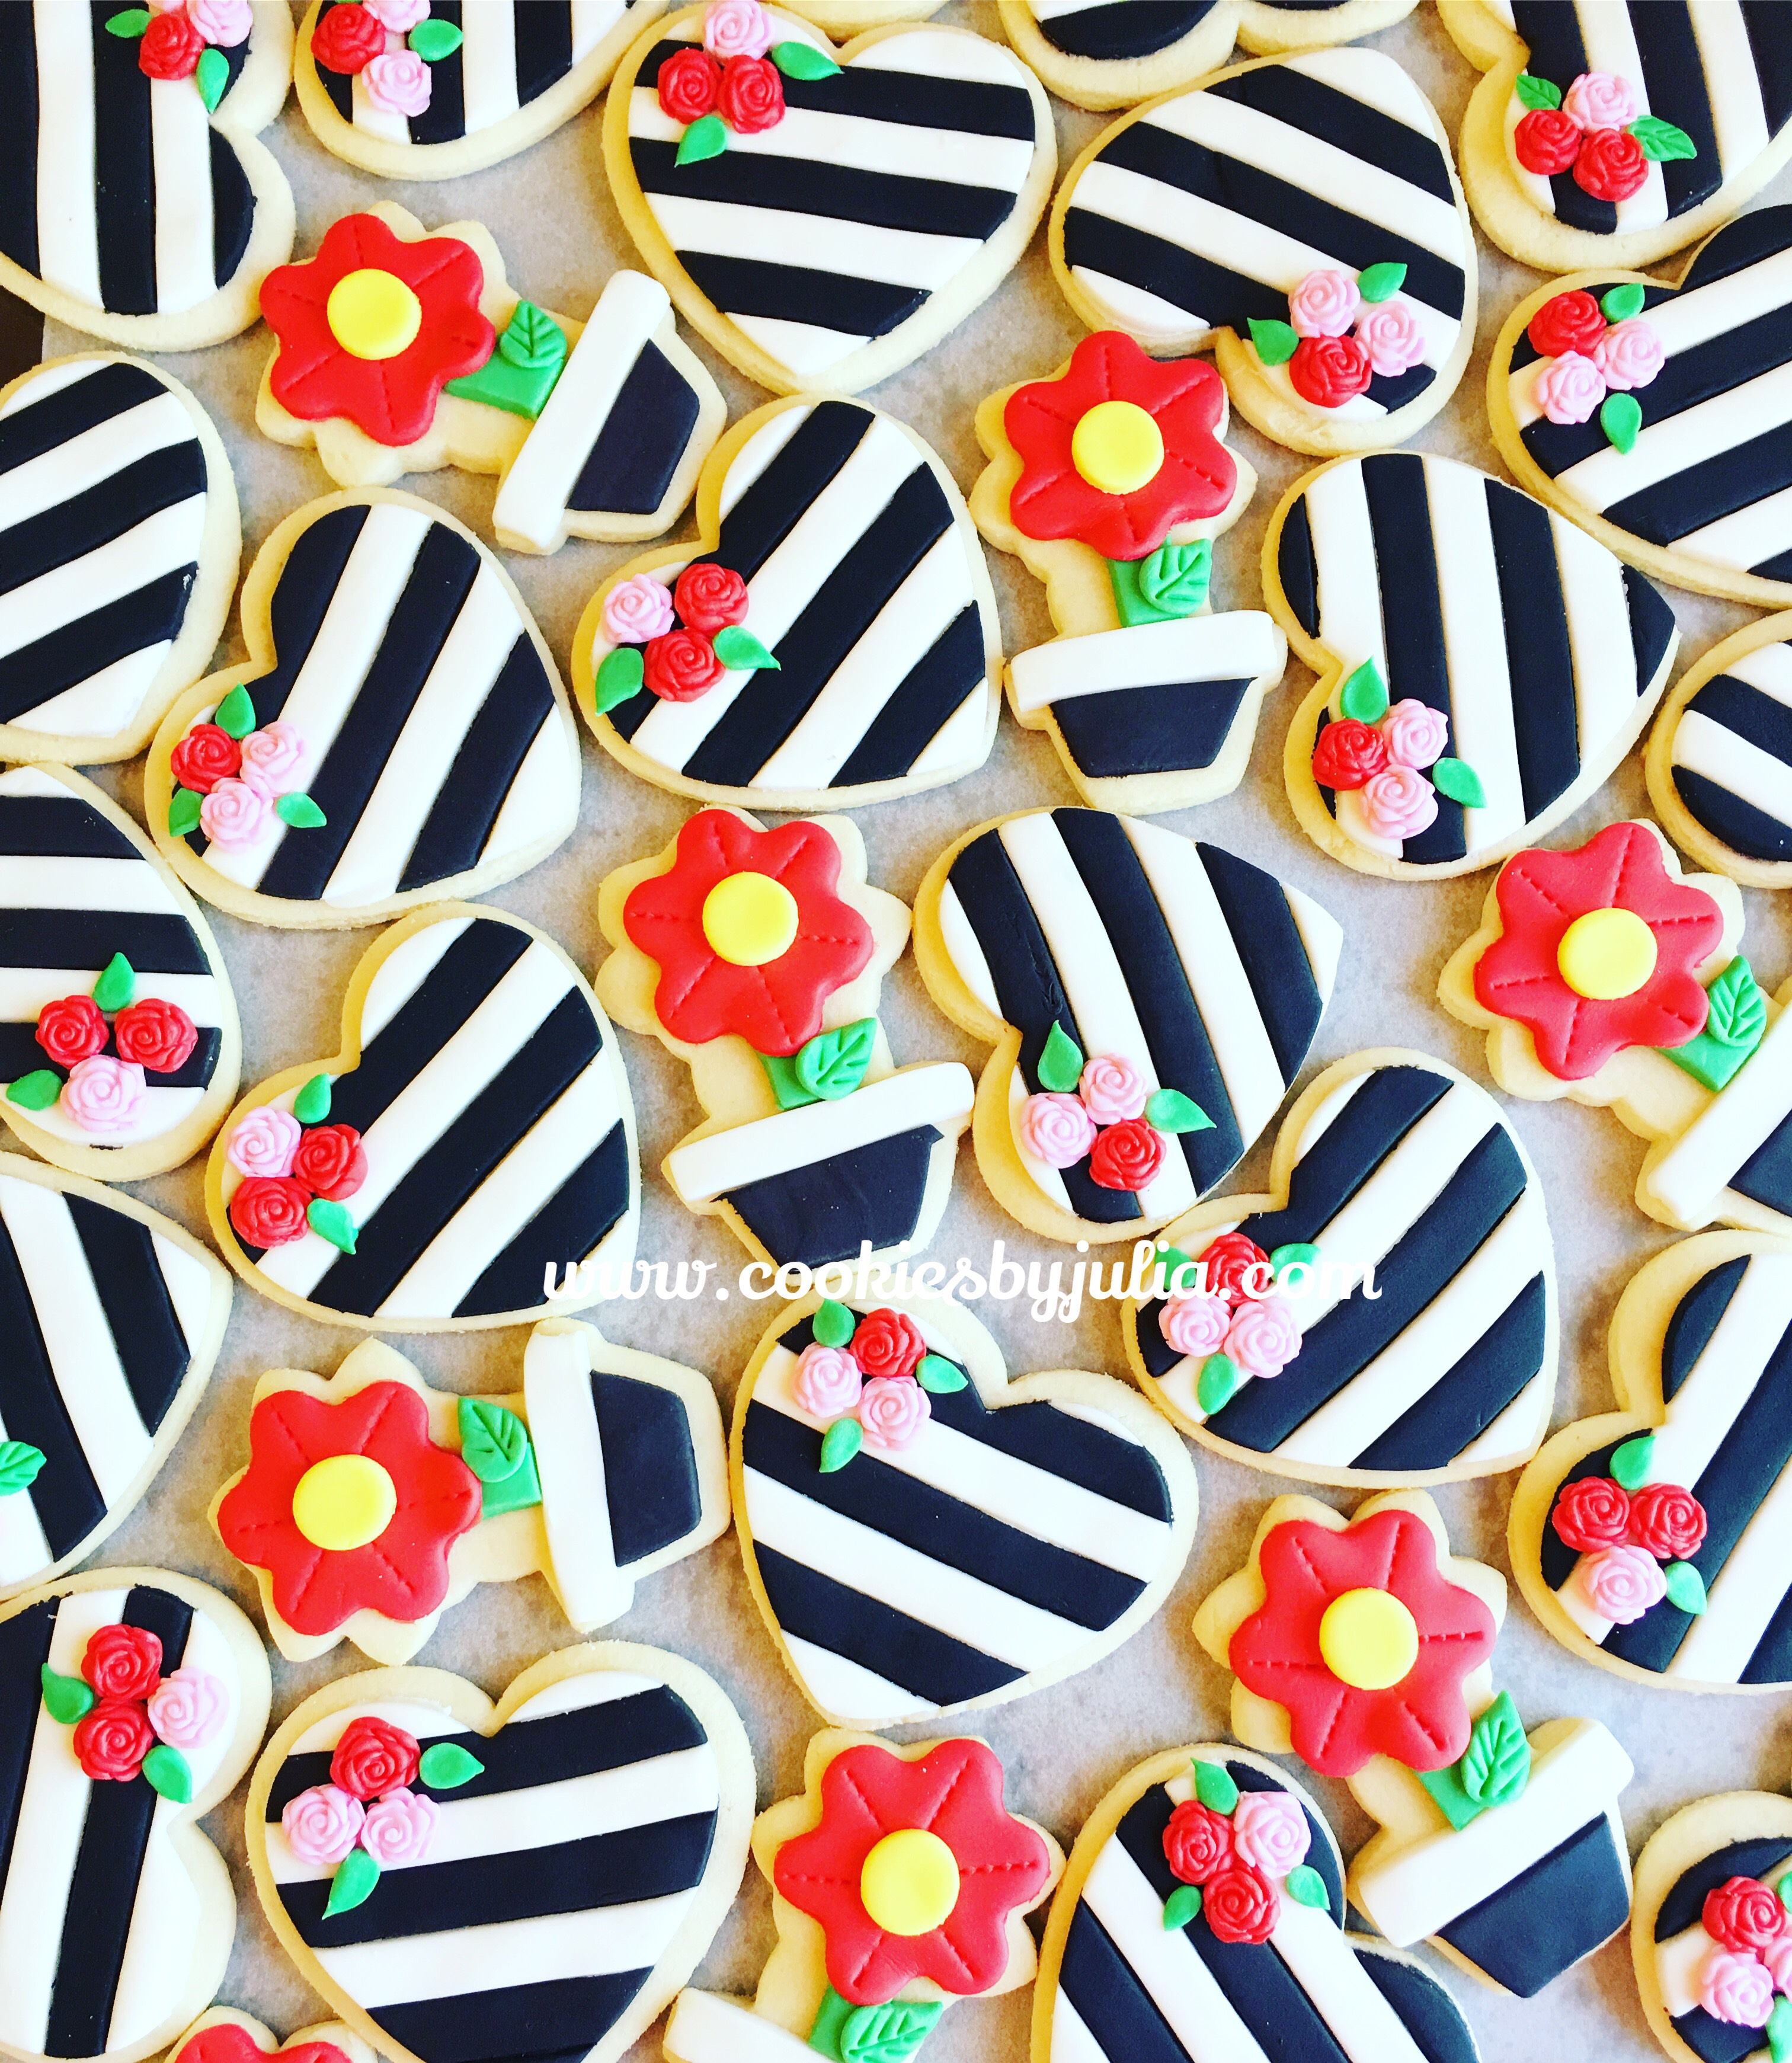 Striped heart and flower fondant cookies